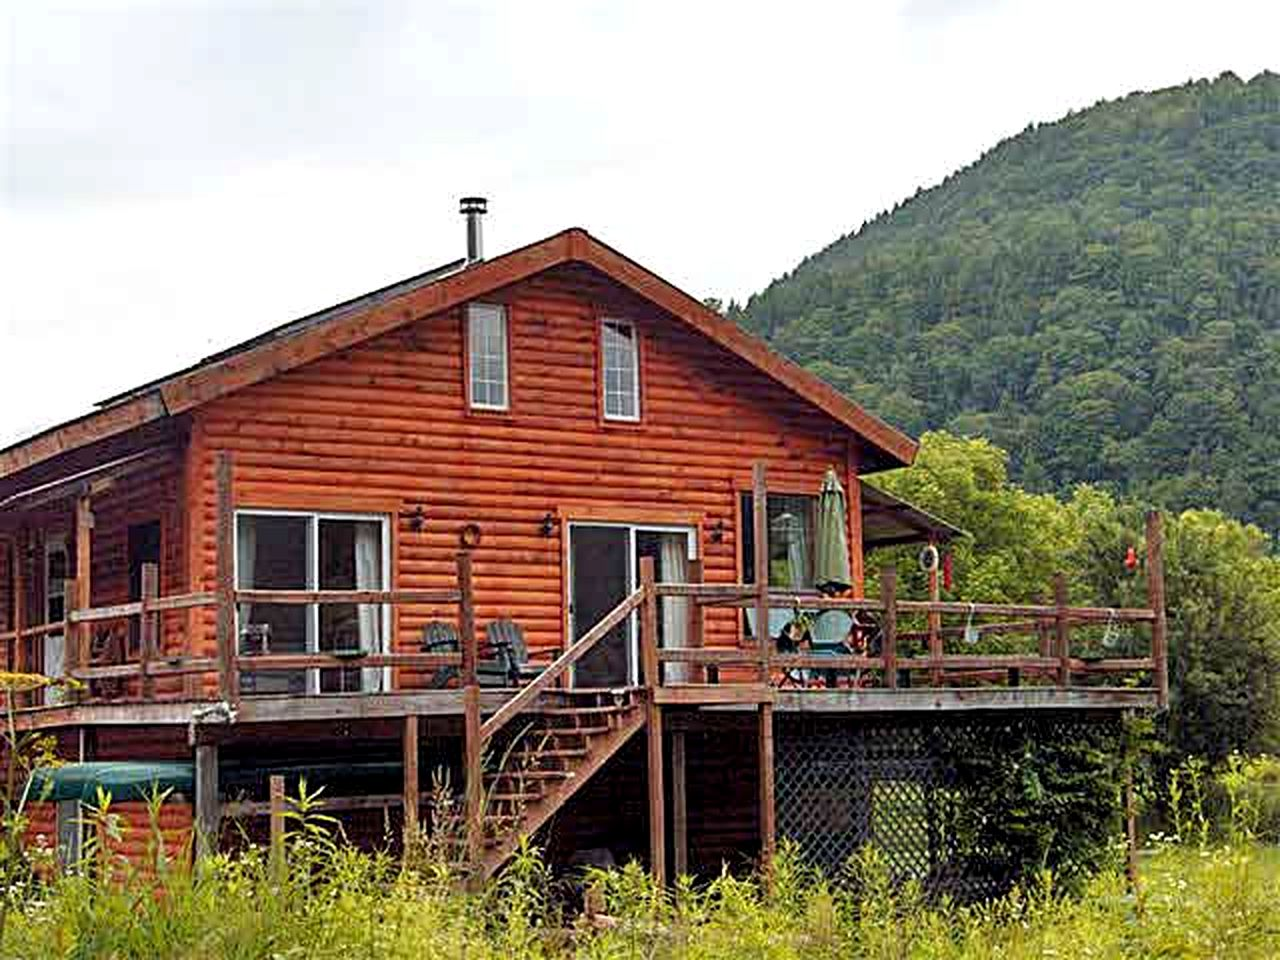 Cabins (Downsville, New York, United States)